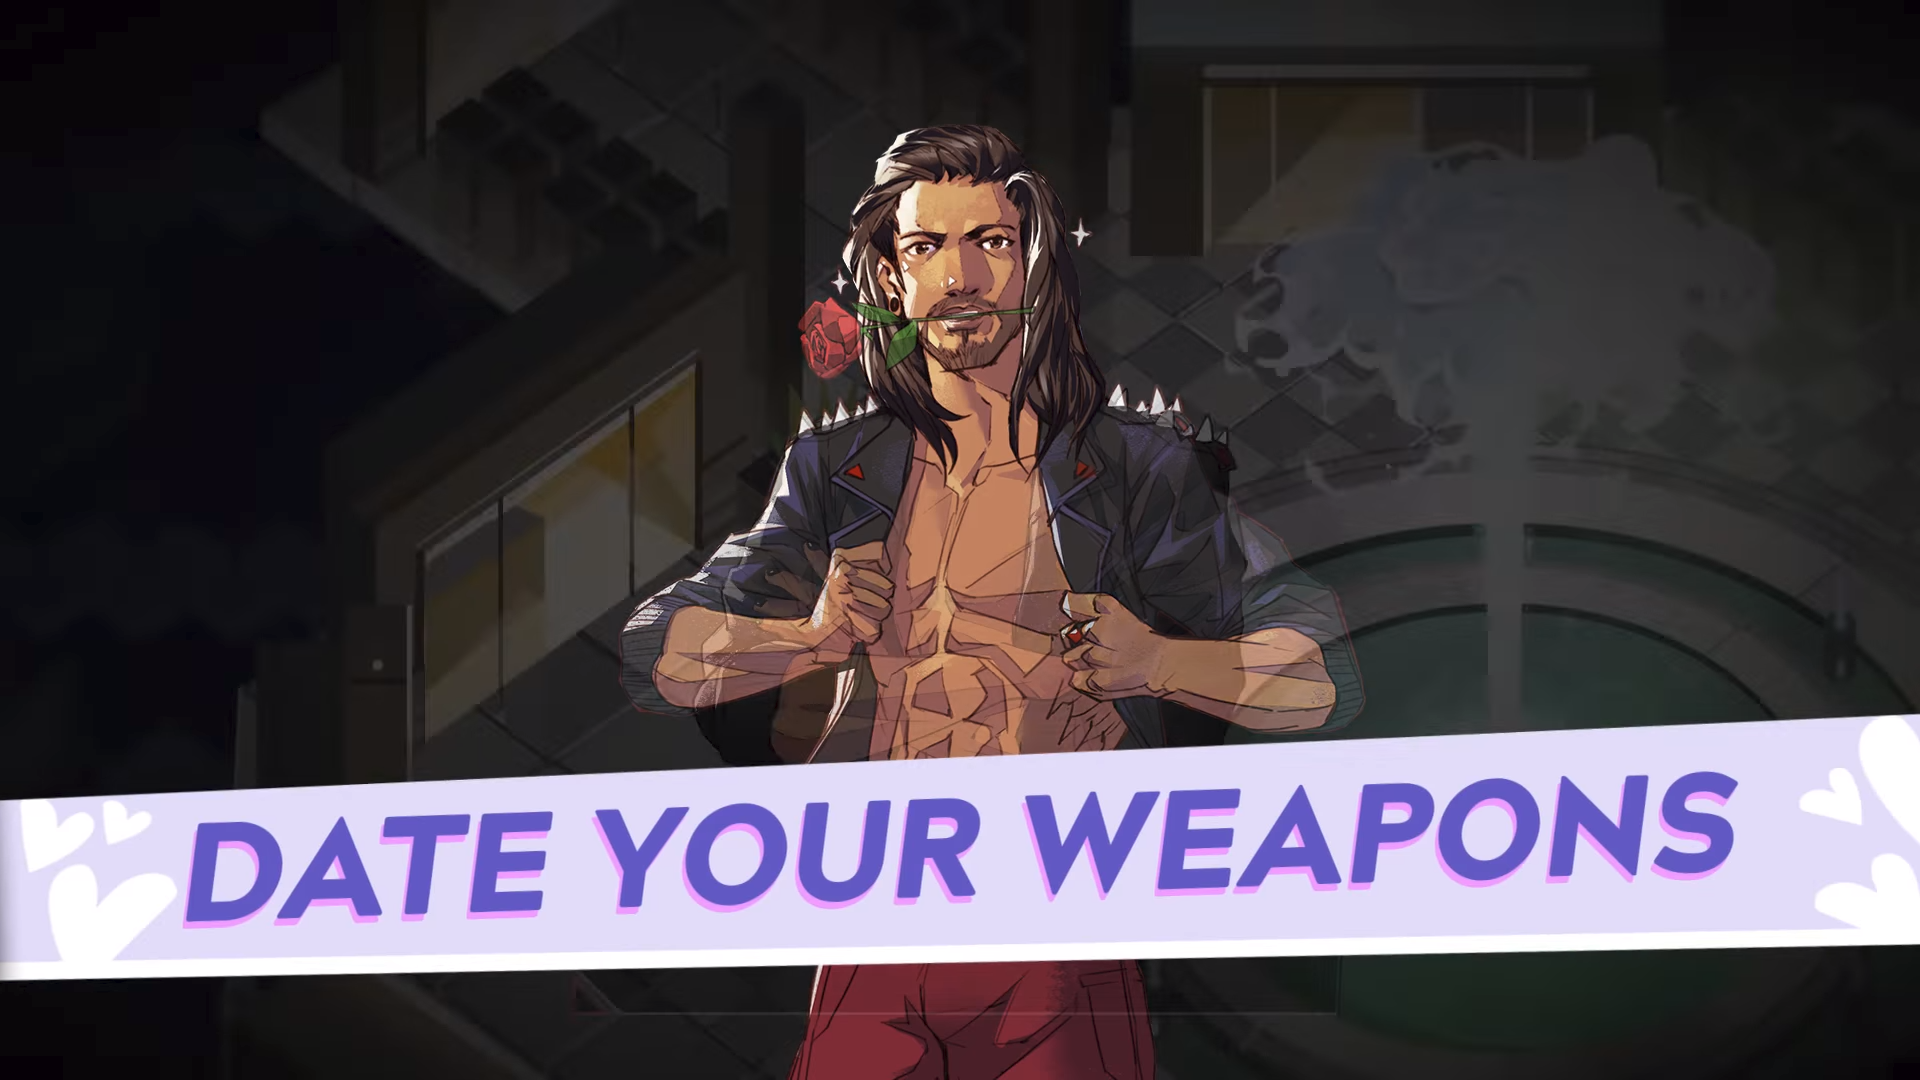 A masculine figure with a rose in his teeth stands behind a text overlay, which reads, 'Date your weapons'.